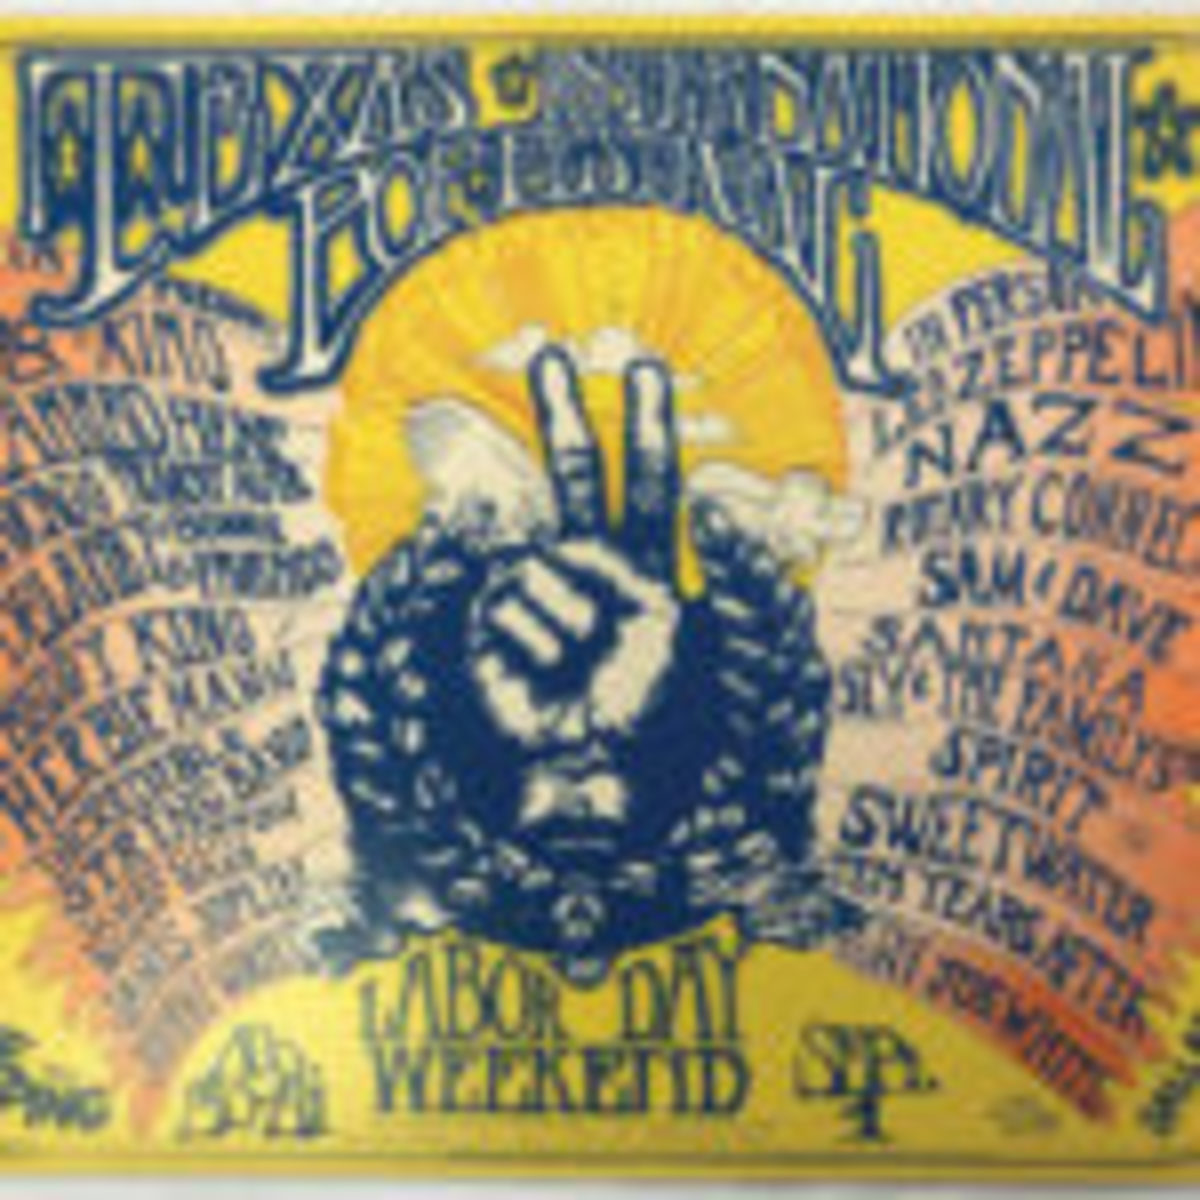 """International Pop Festival"" poster (Texas, 1969), featuring Led Zeppelin, Janis Joplin and many other rock 'n' roll luminaries from the era."